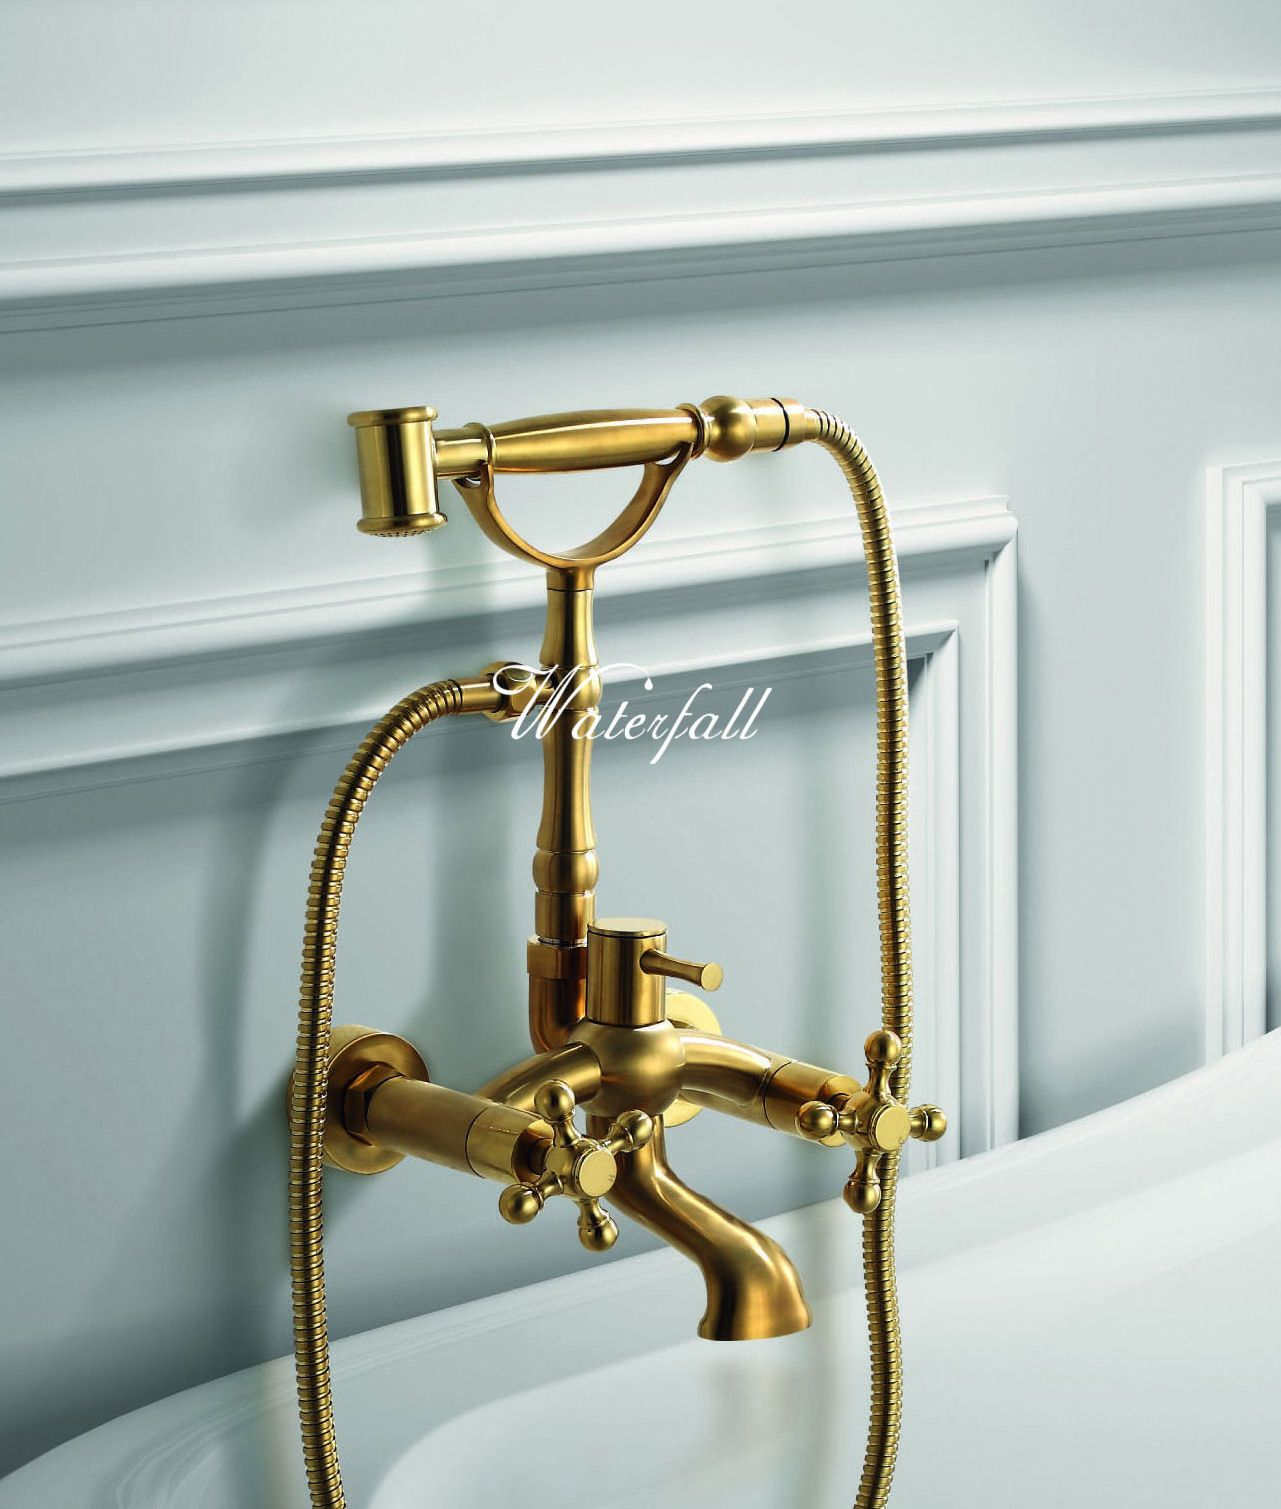 tub faucet faucets bathtub moen handle and clawfoot replacement bronze gold sink copper rubbed chrome bathroom valve one